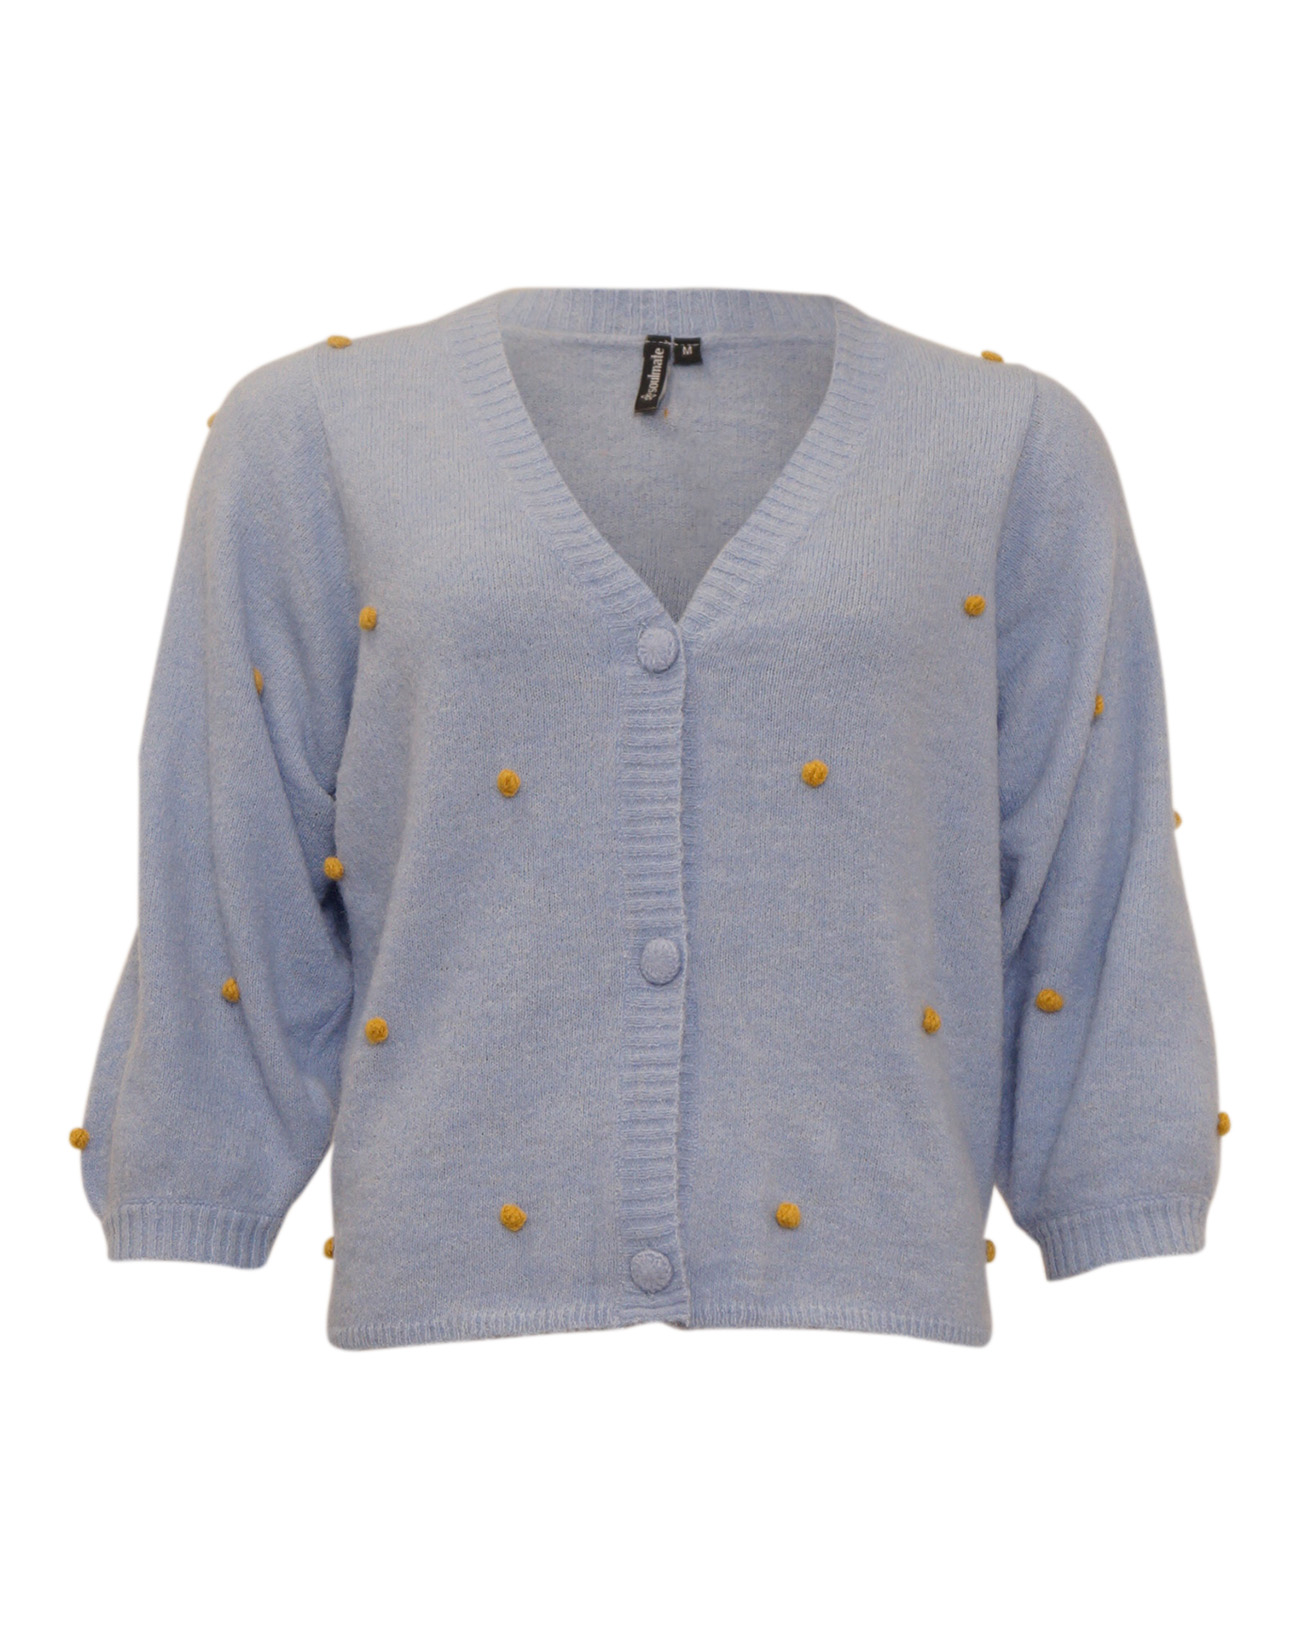 Sofie 1 Cardigan - Knit